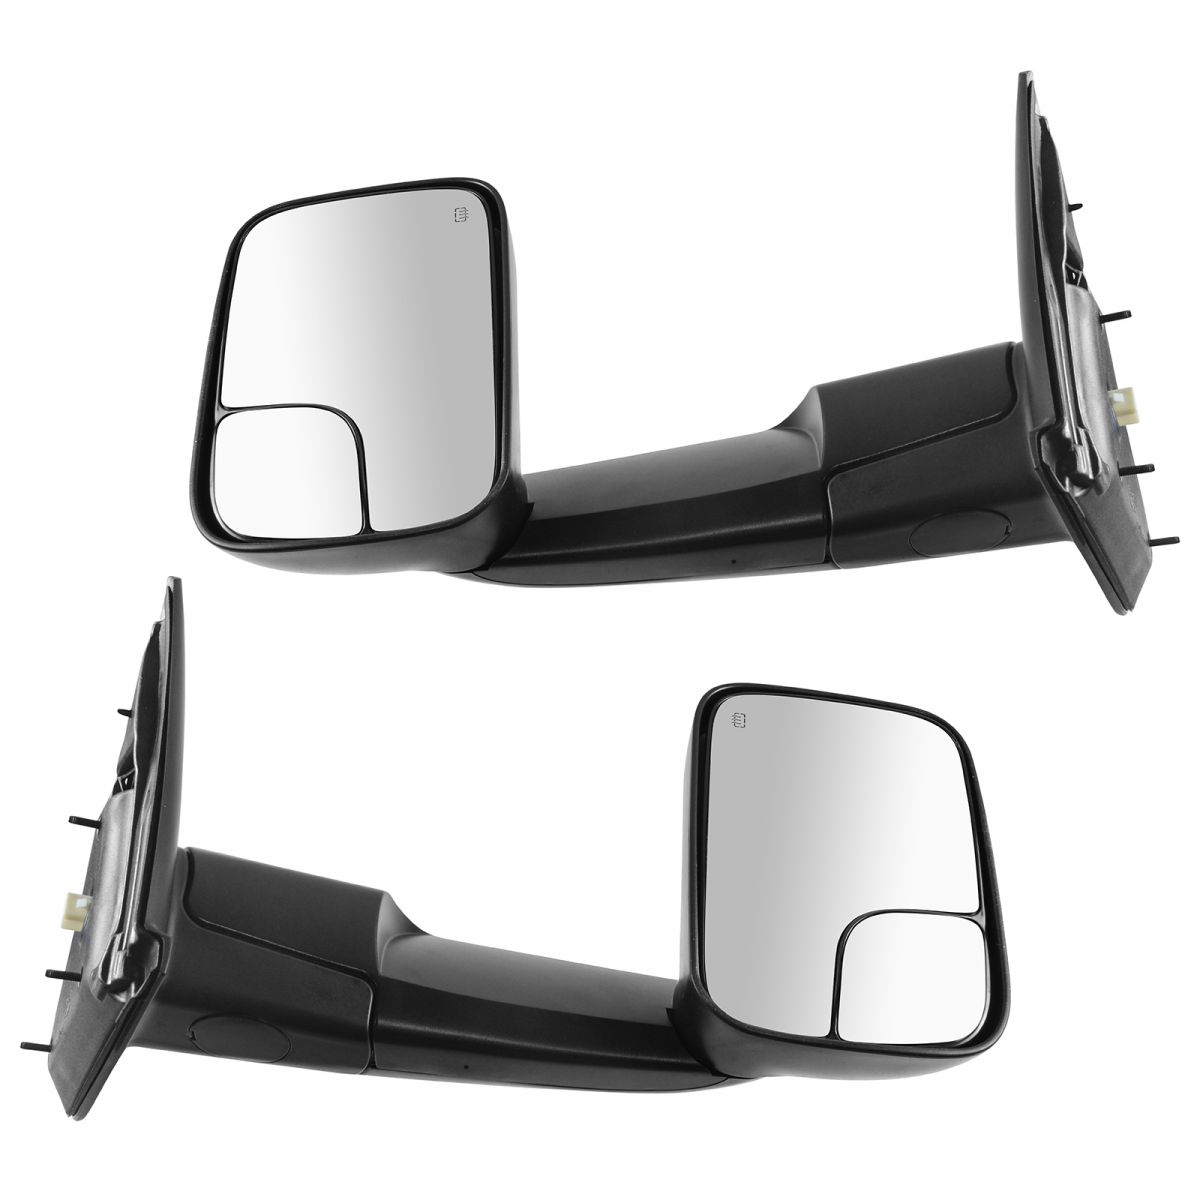 OEM 82207298 Power Heater Flip Up Style Tow Mirrors Pair ...